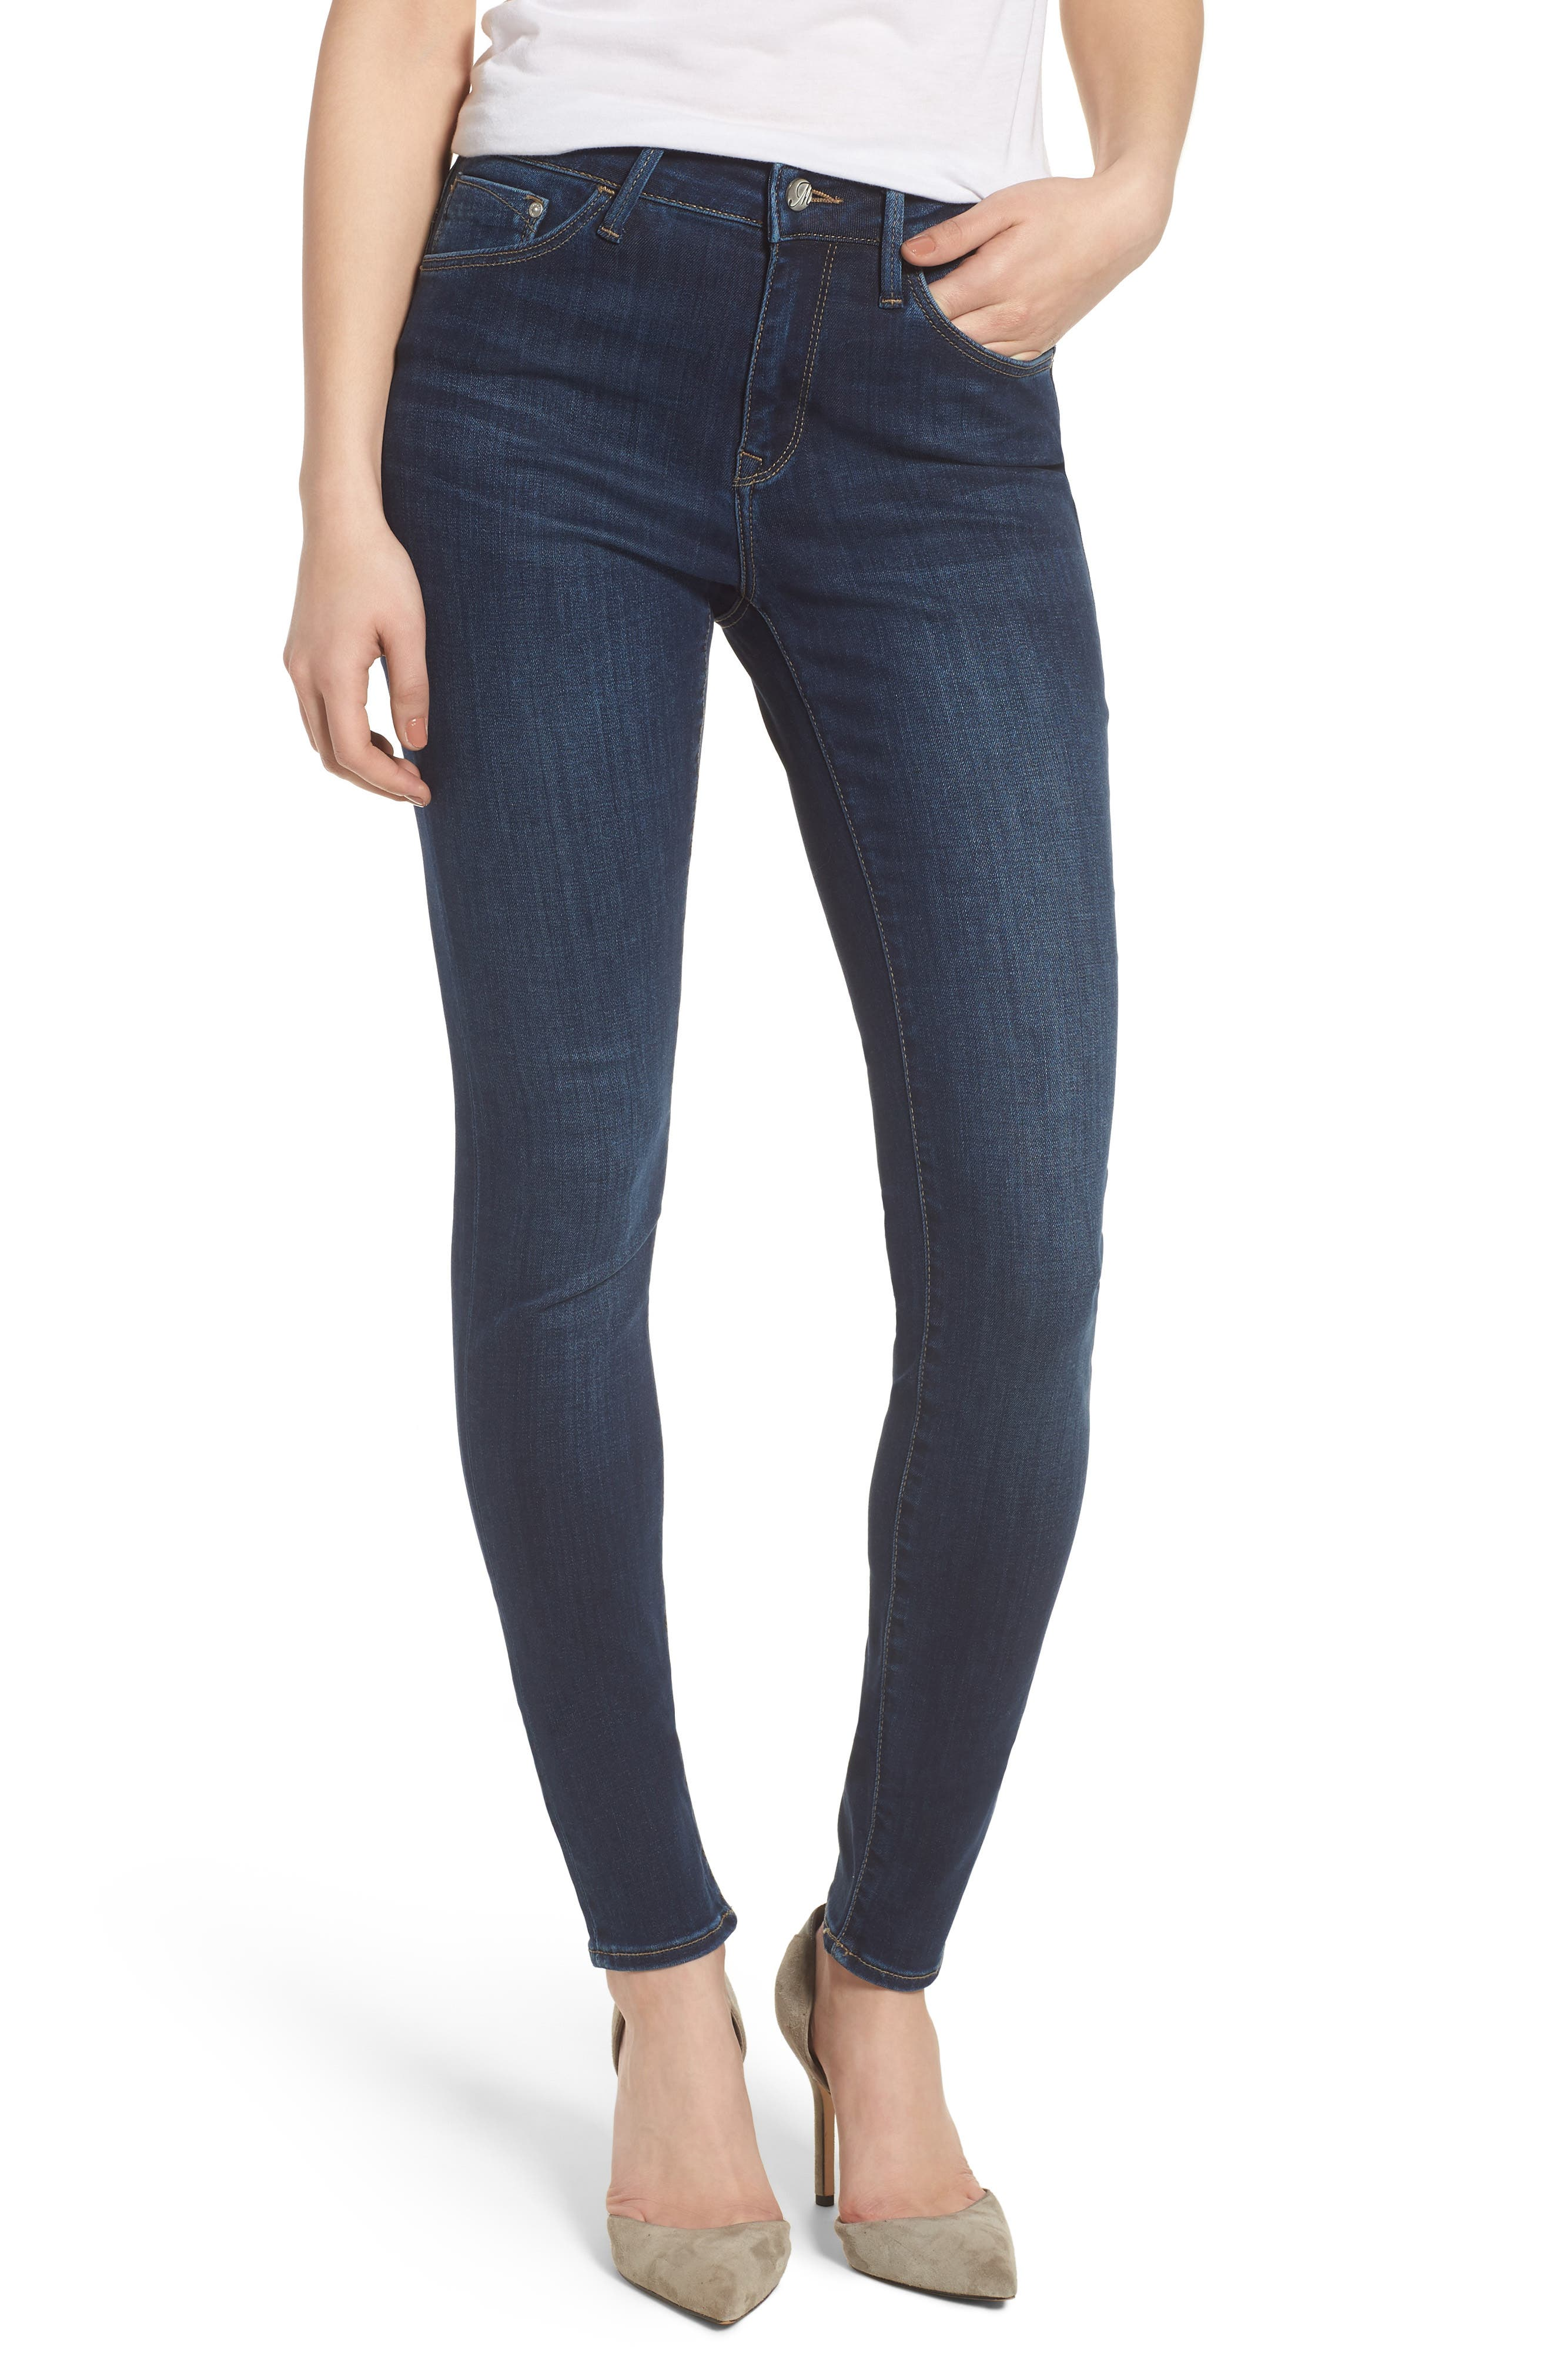 Alissa Skinny Jeans,                             Main thumbnail 1, color,                             Dark Supersoft